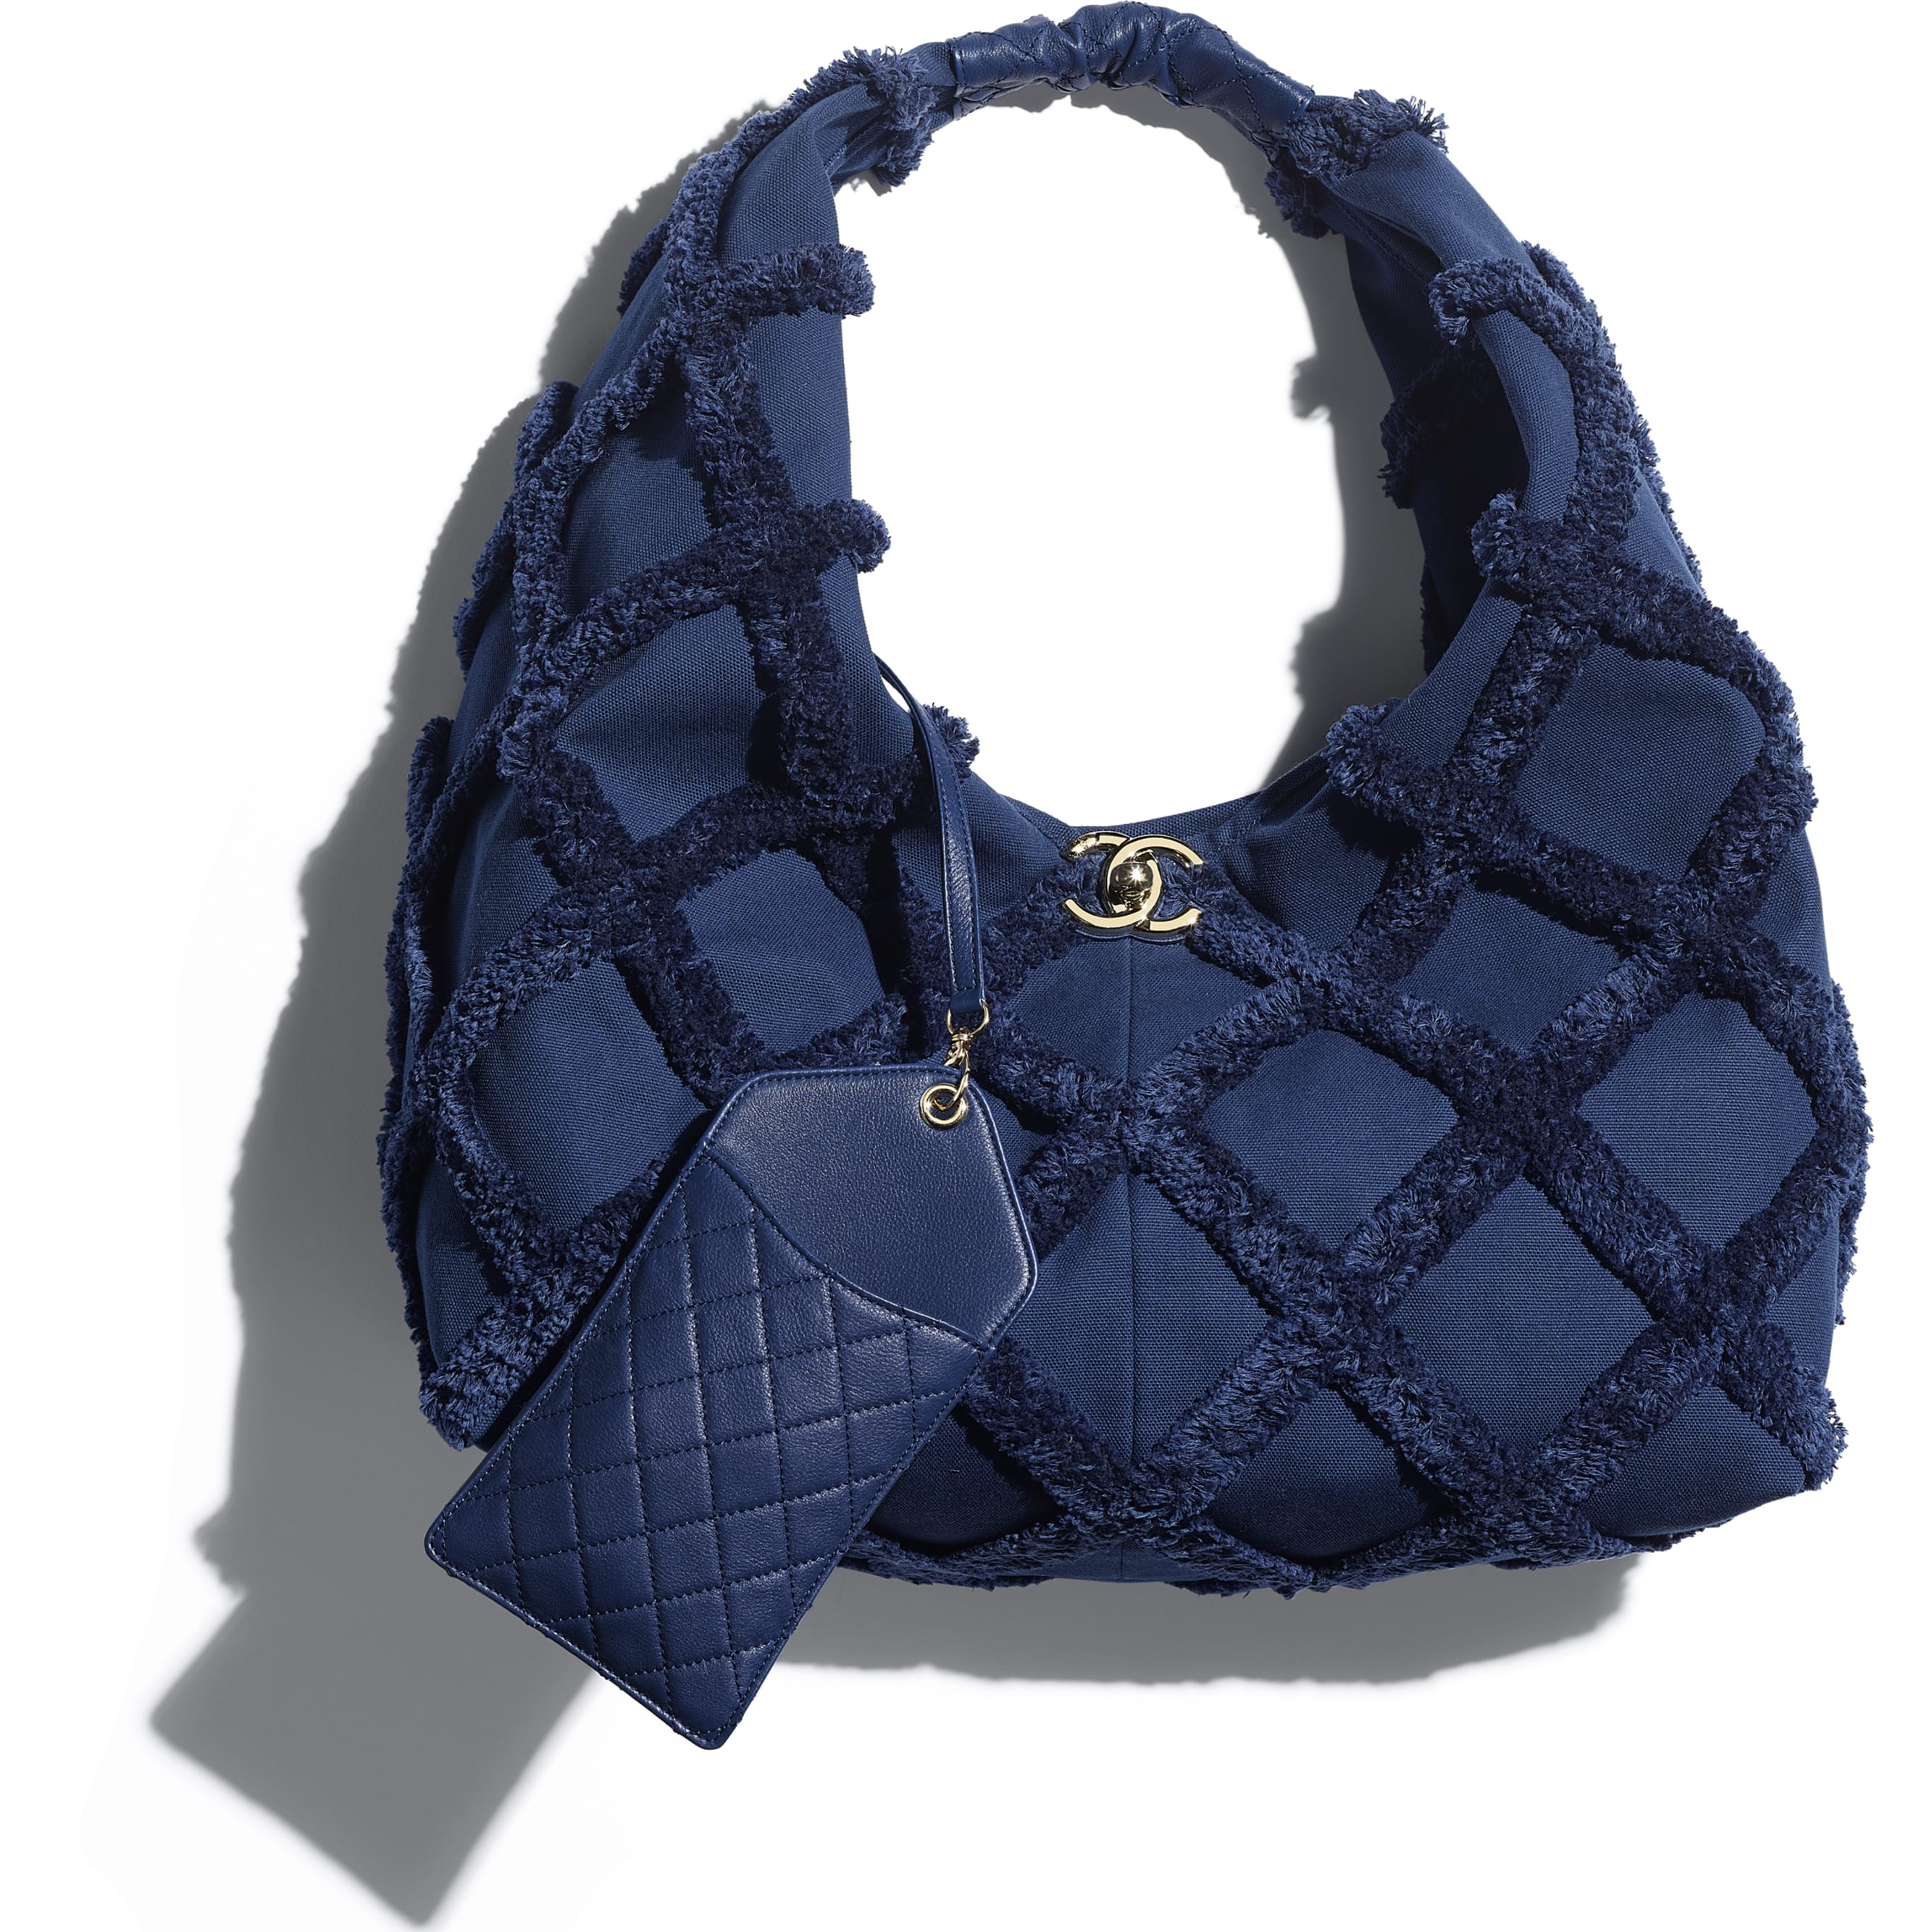 Large Hobo Bag - Navy Blue - Cotton Canvas, Calfskin & Gold-Tone Metal - CHANEL - Extra view - see standard sized version